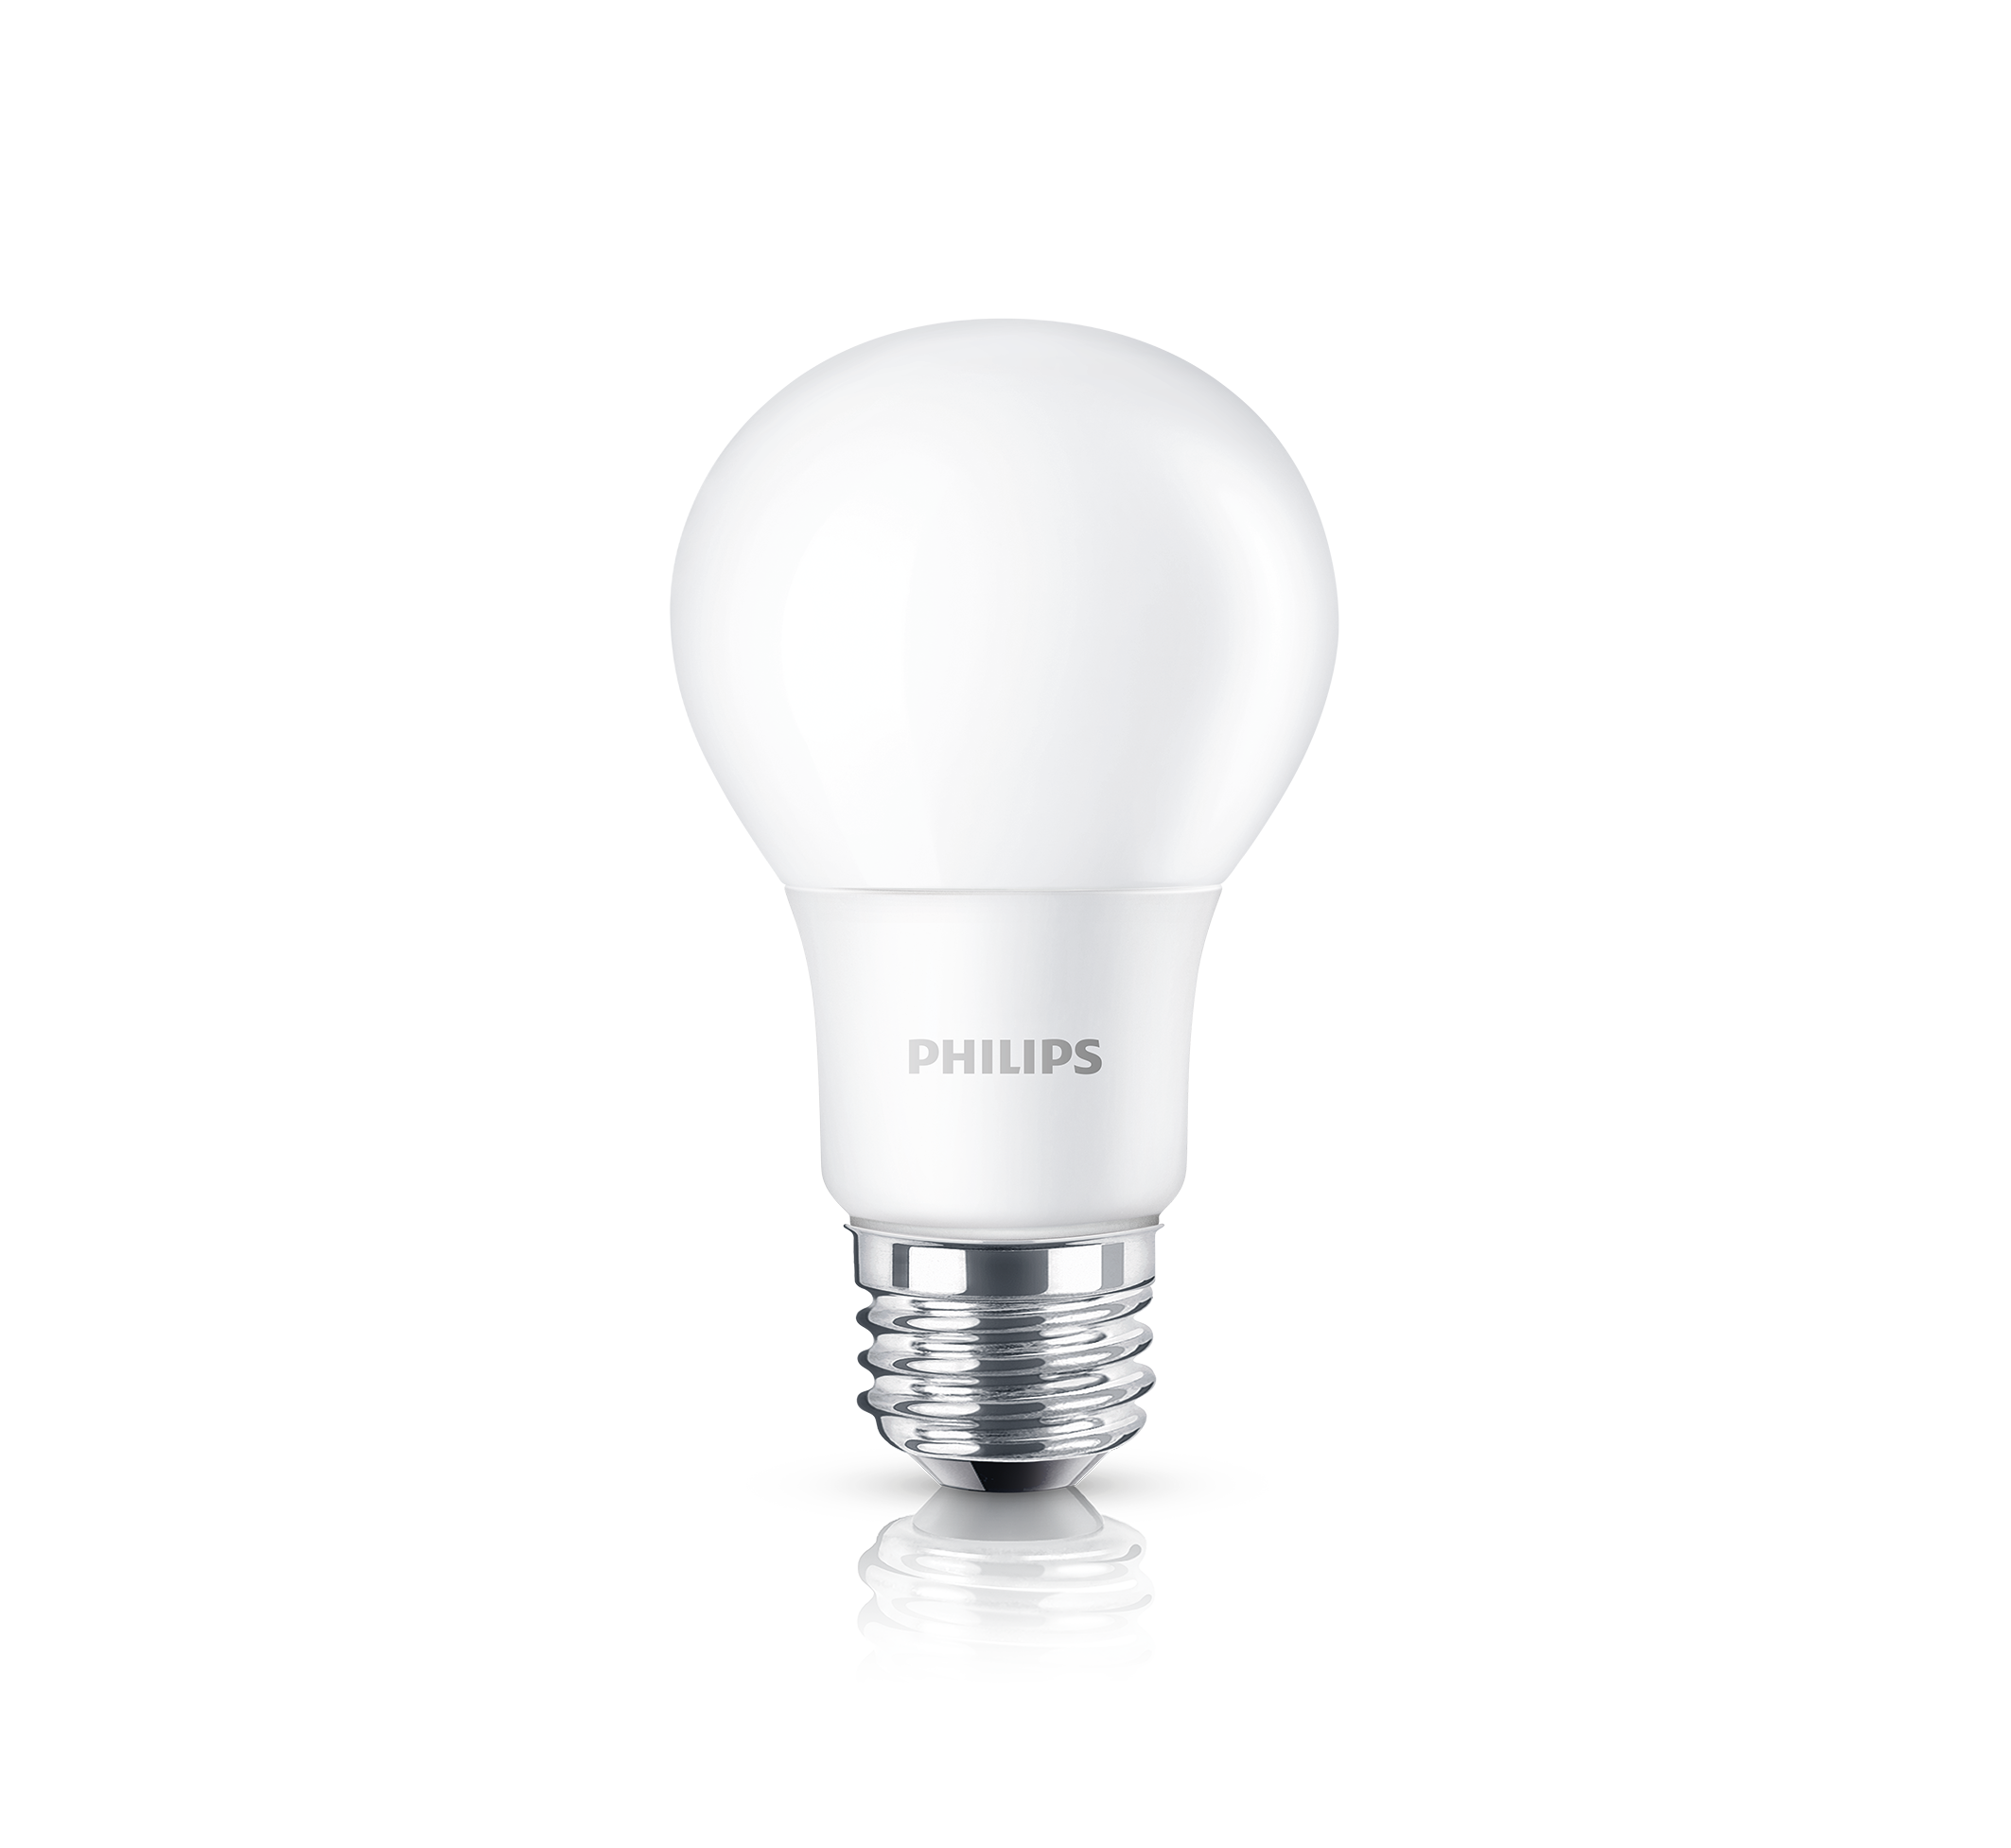 I have found that SaniBulb™ Ionic Air Purifier Air Sanitizer CFL Bulb is the most convenient product on the market for sanitizing my home and works exceptionally well.